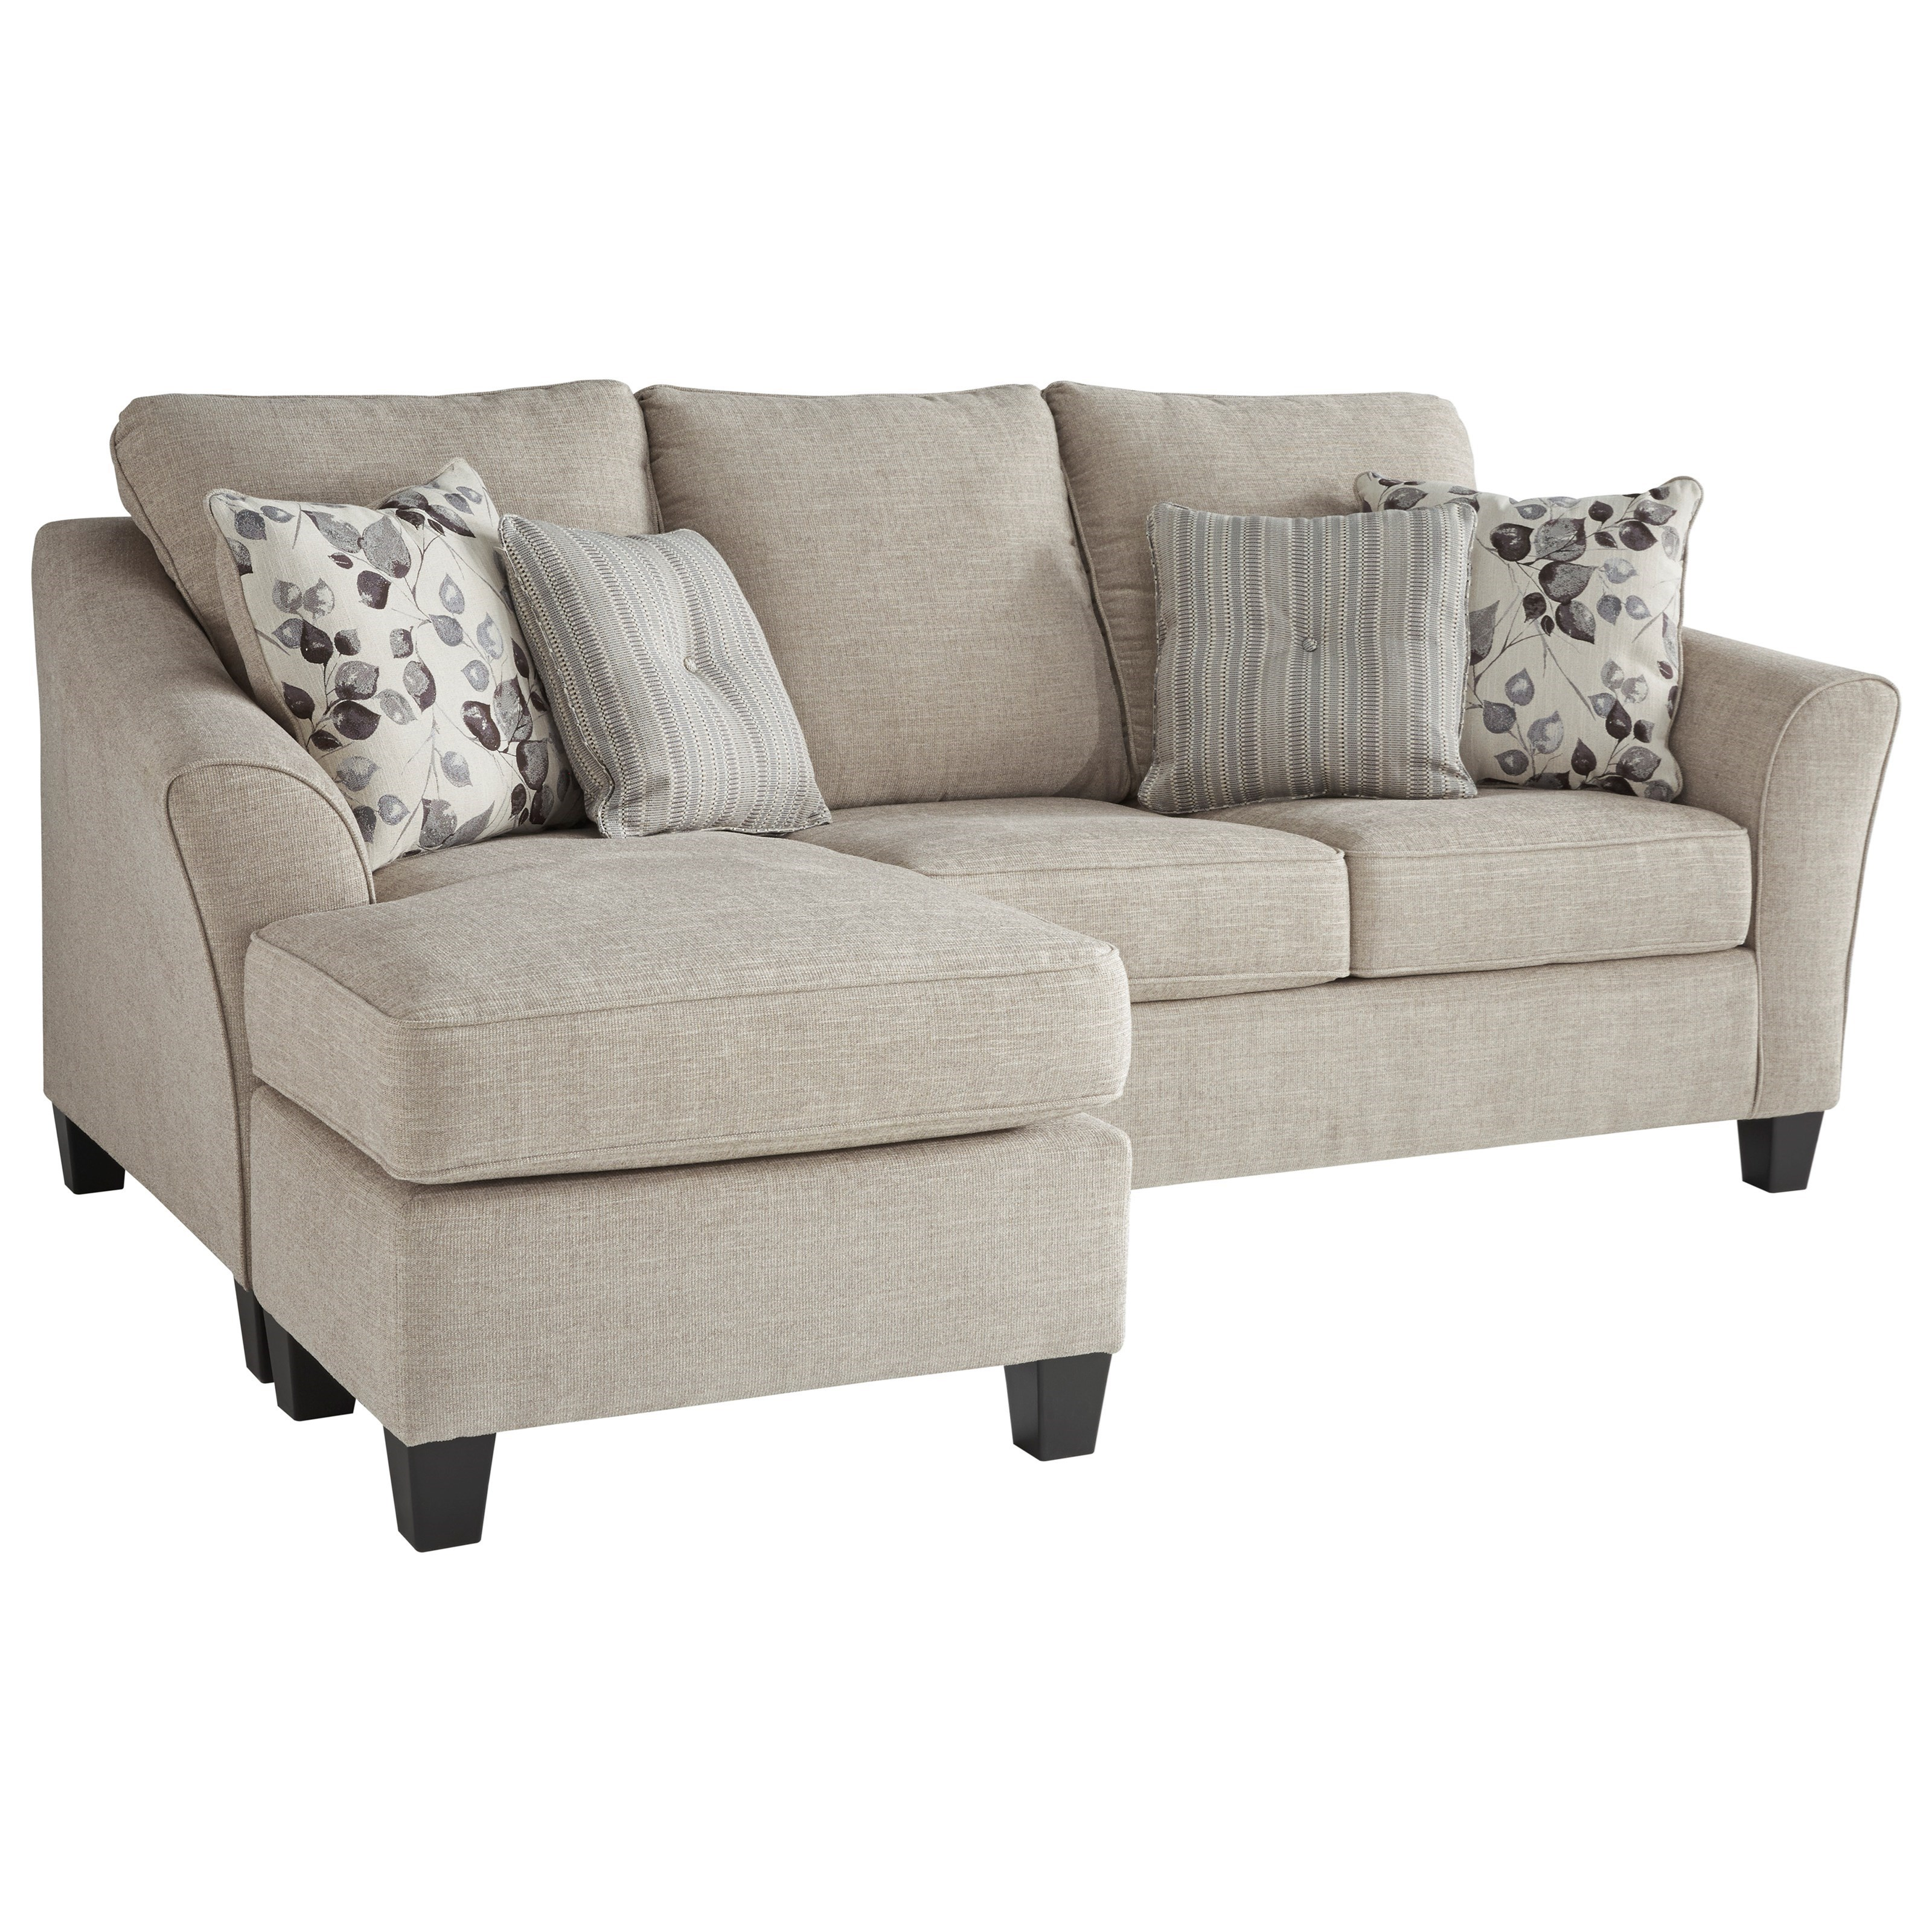 Abney Sofa Chaise by Benchcraft at Gill Brothers Furniture